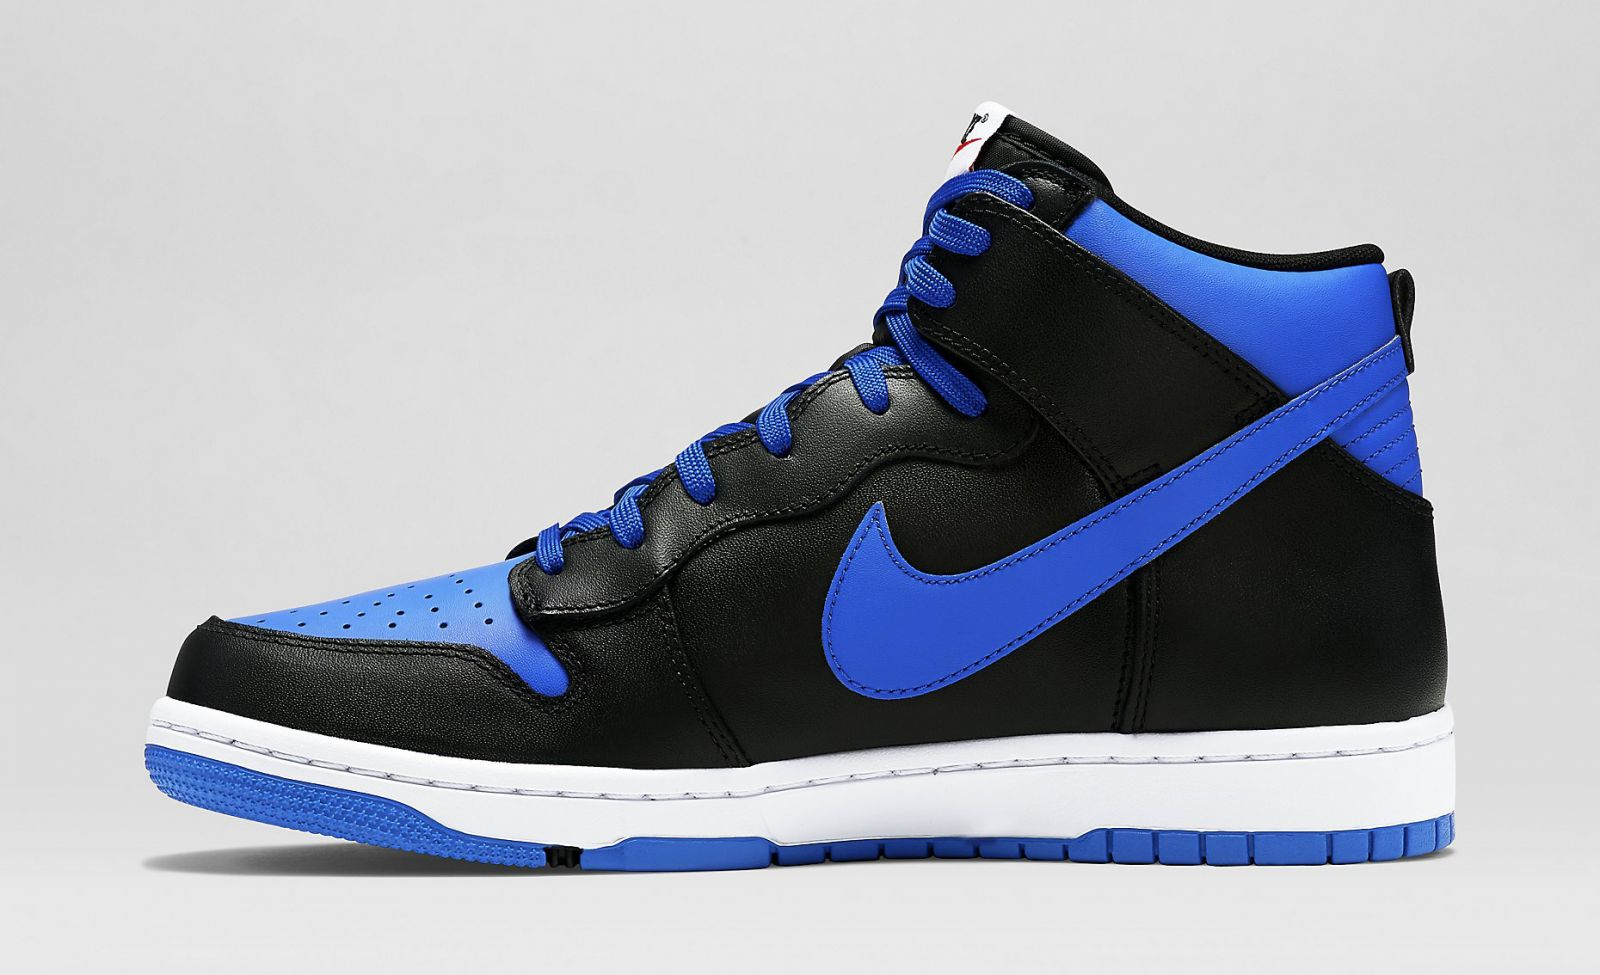 size 40 d2df6 cacc1 Nikes CMFT Dunk High build with an enticing, Jordan-inspired colorway.